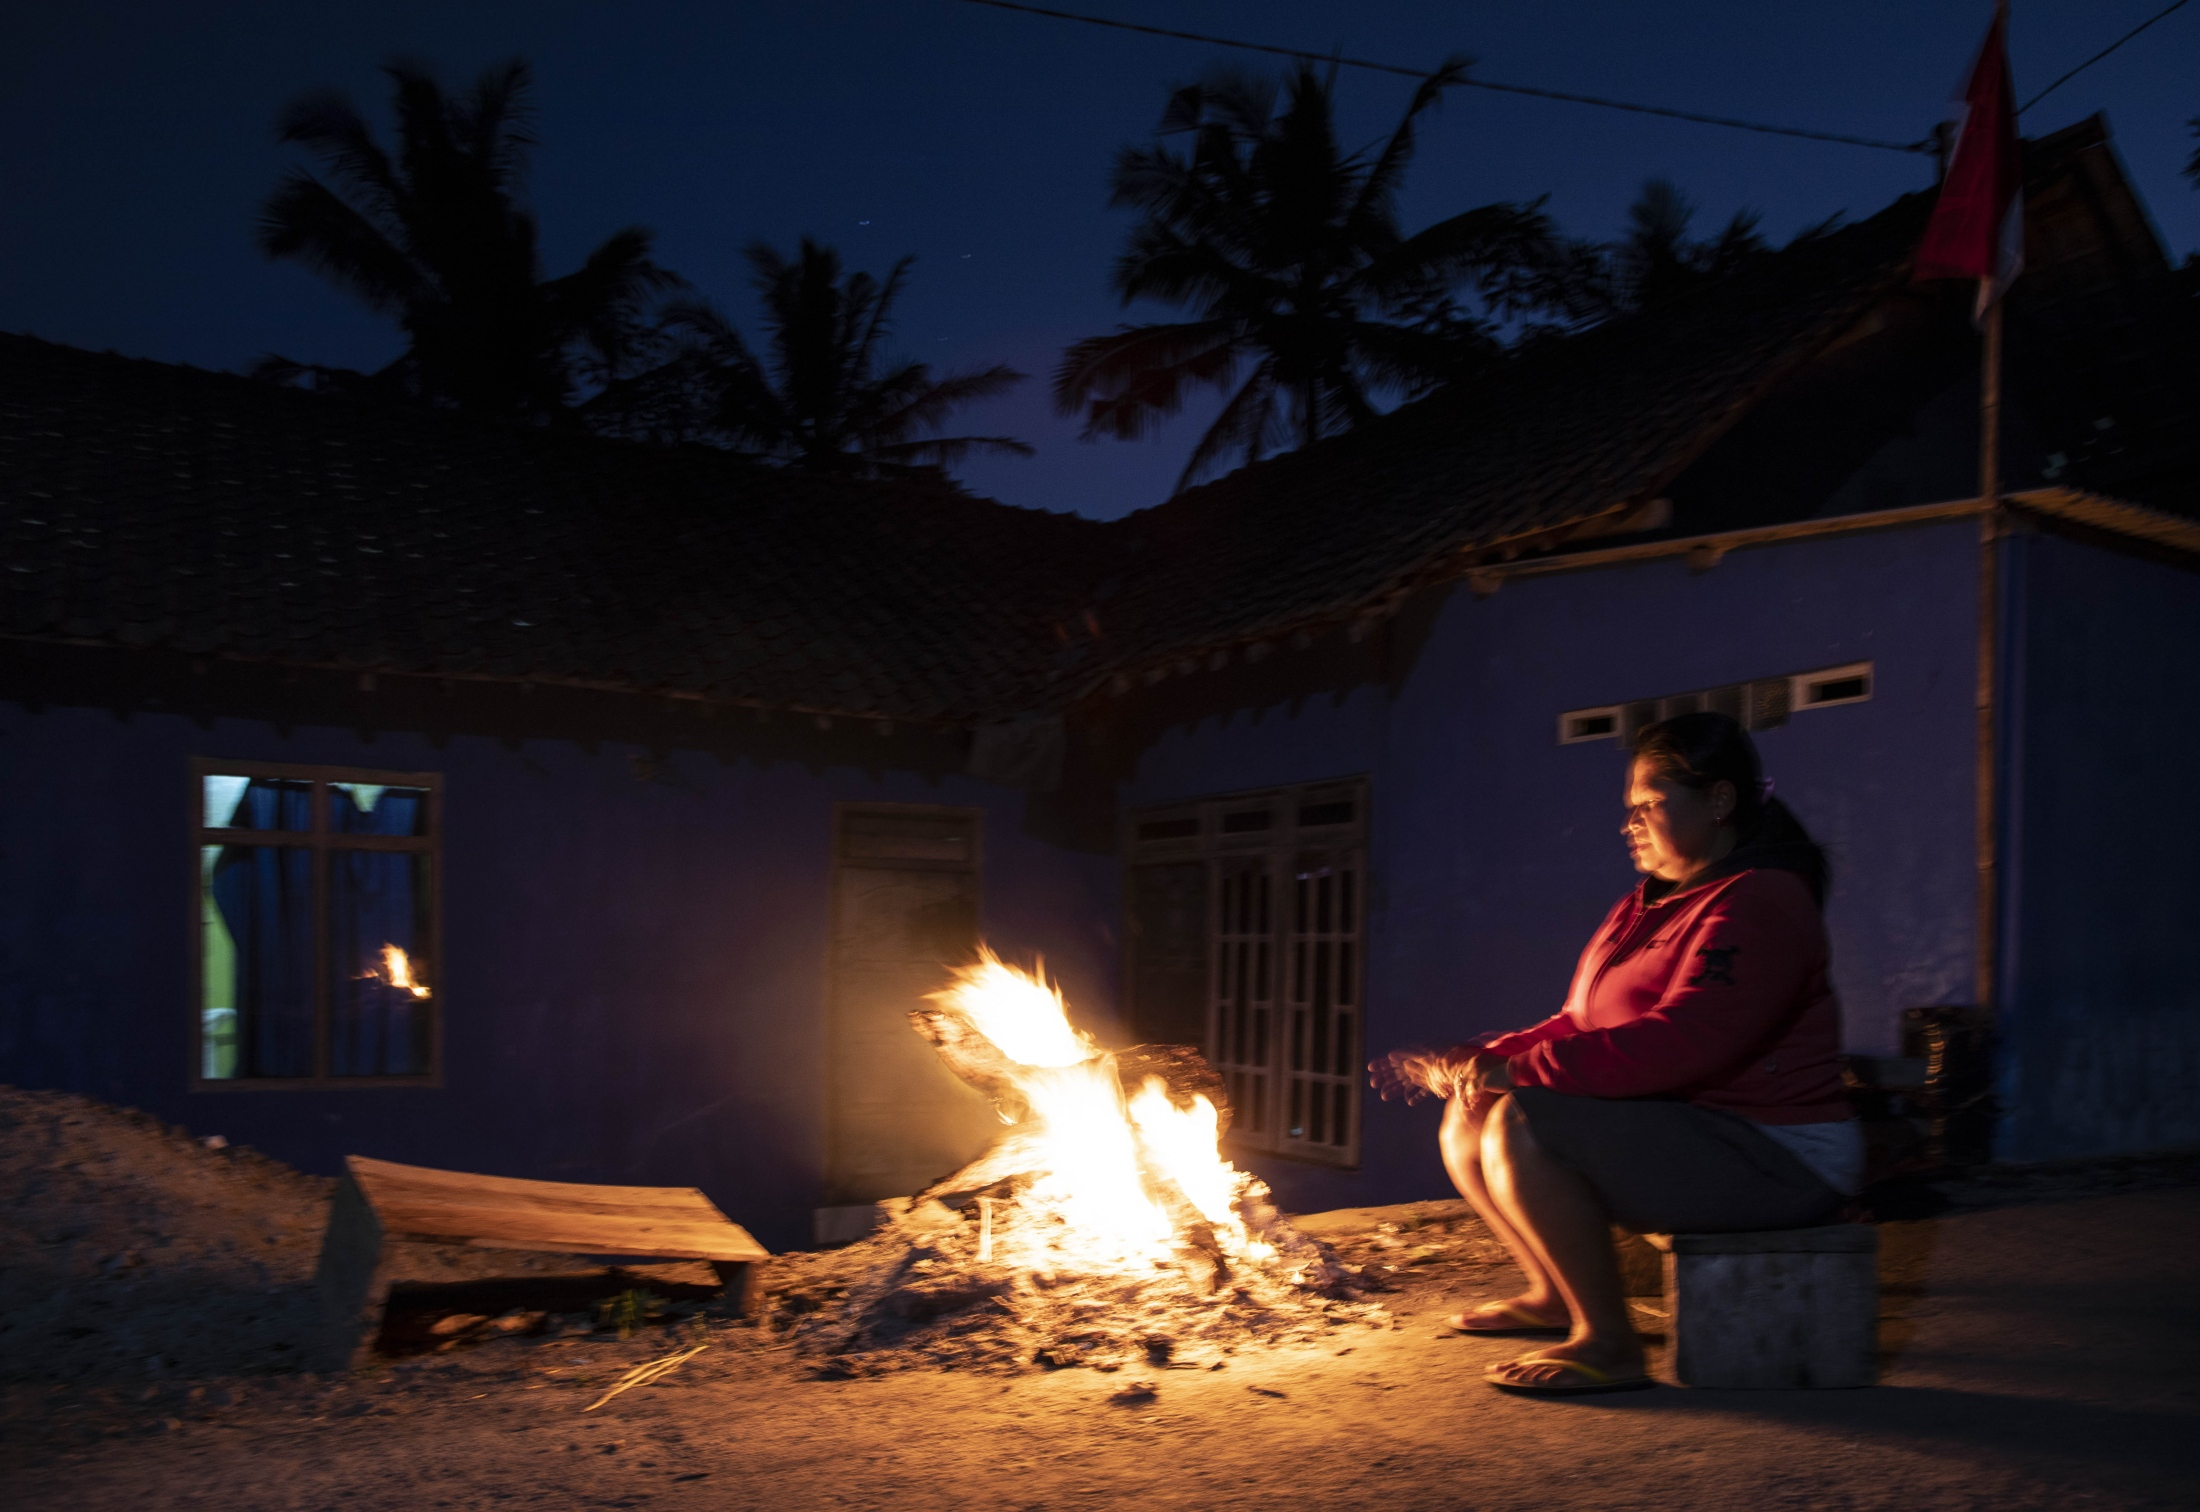 Rusmiyati, 45, sits by a fire in the evening, near the ruins shown in the previous picture. She refuses to move to a relocation village as she feels that the high risk zone continues to be her home. Traditionally the 'home' of the women living on Merapi was the place where they would live and work. For the relocated, the relocation village has become their home, however, with no land that belongs to them, their former land has become a place of work.